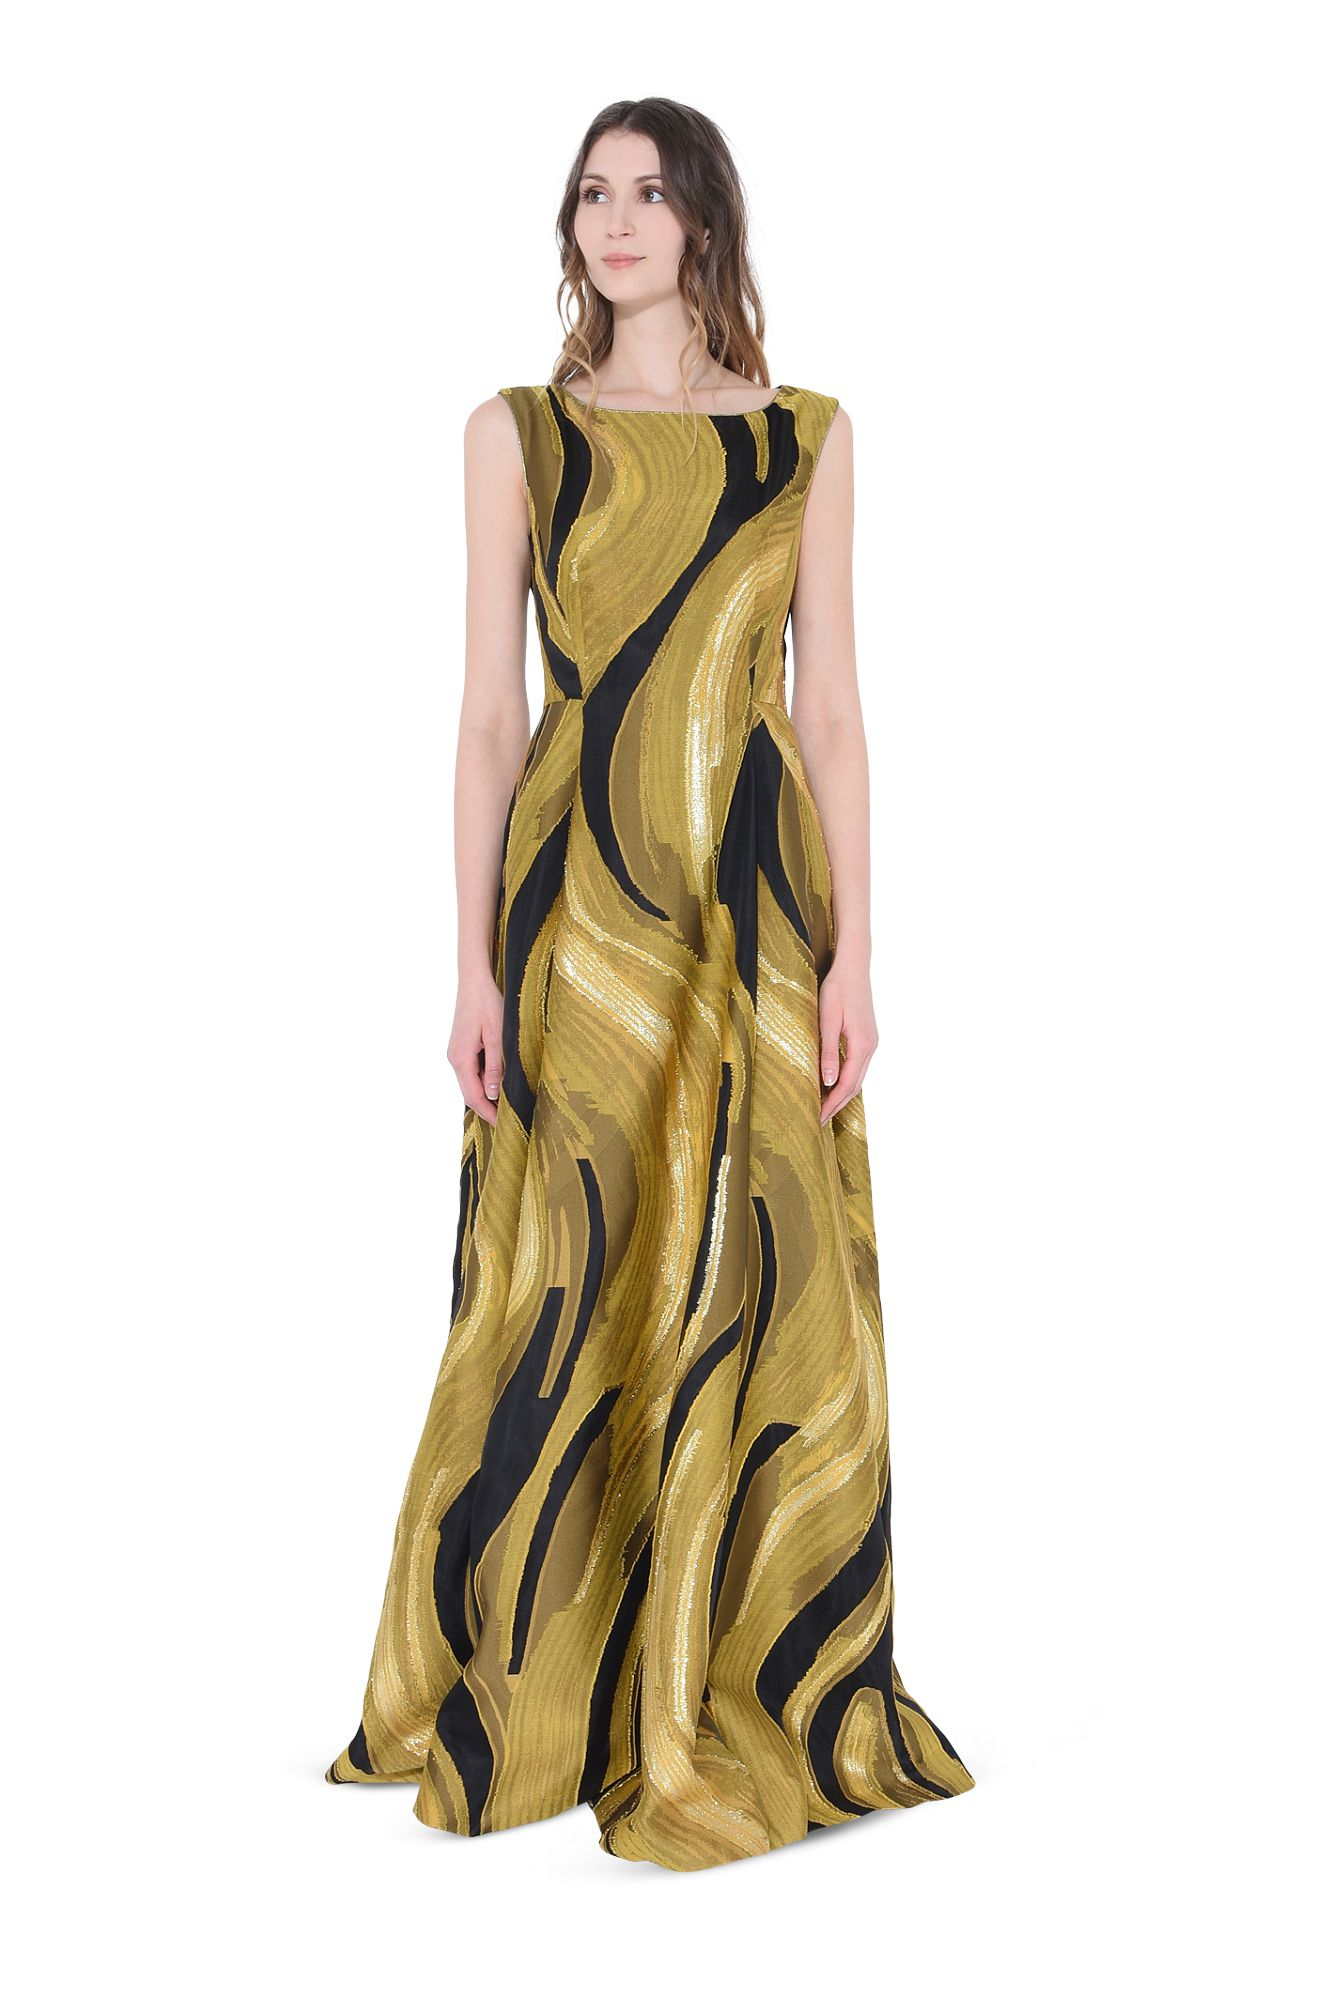 GOLD WAVES-DRESS